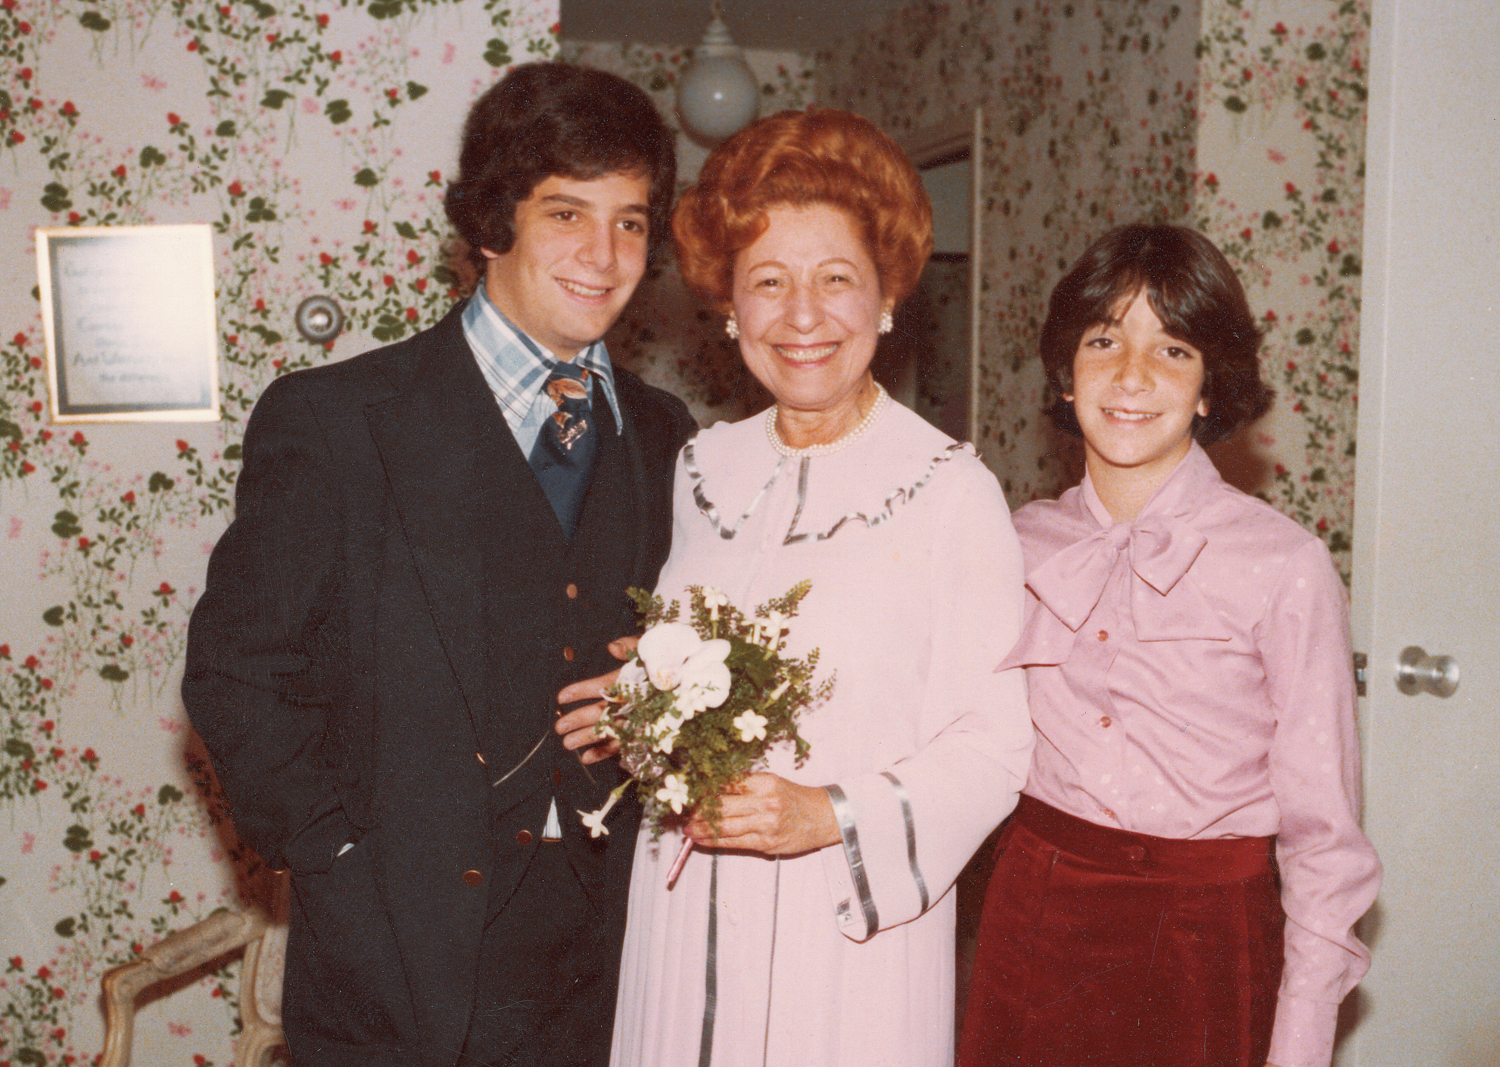 My children, Barry and Alison, at Mother's wedding in 1978.